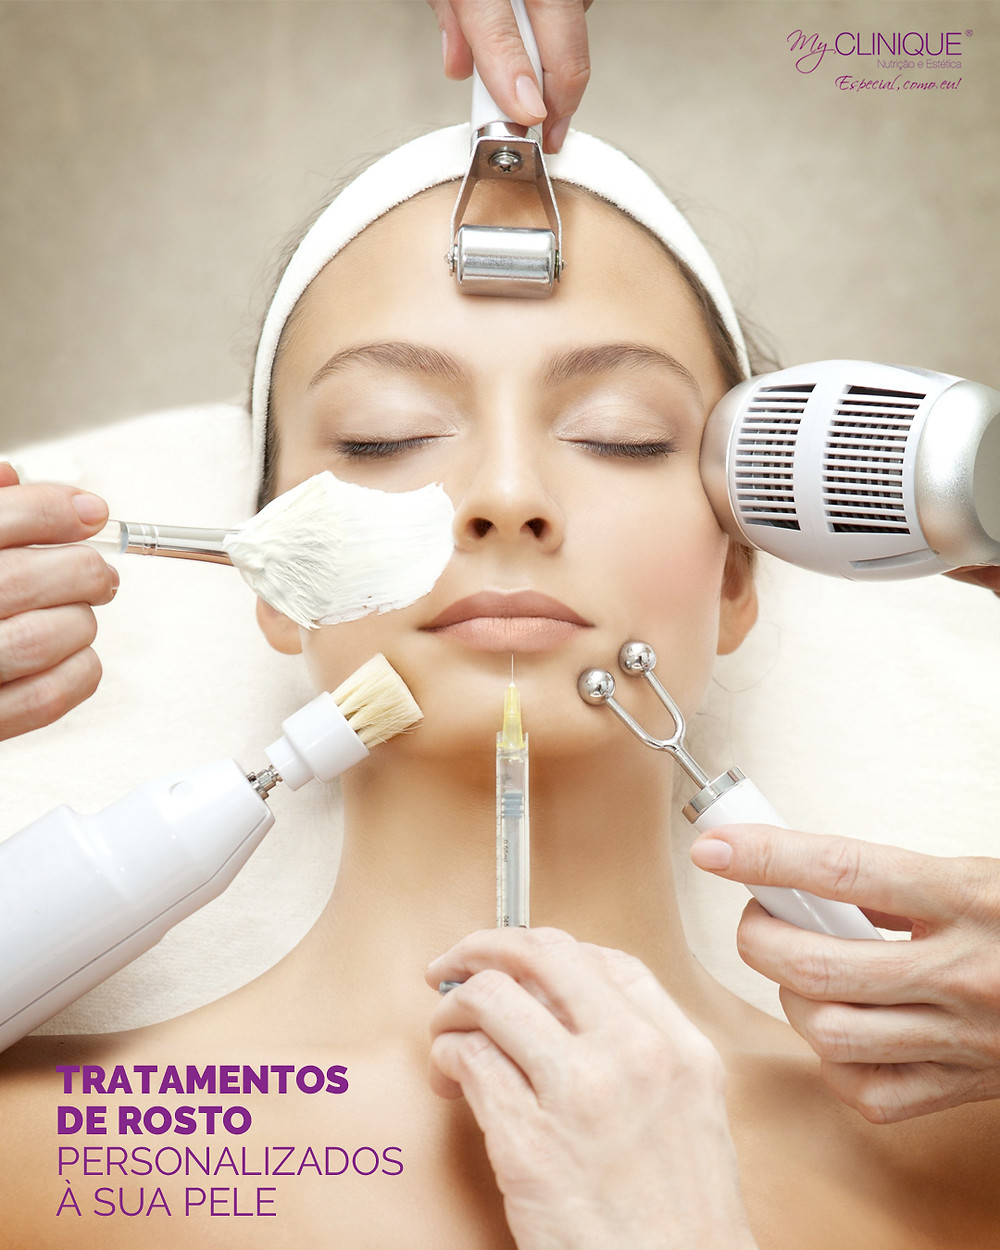 myclinique medicina estetica